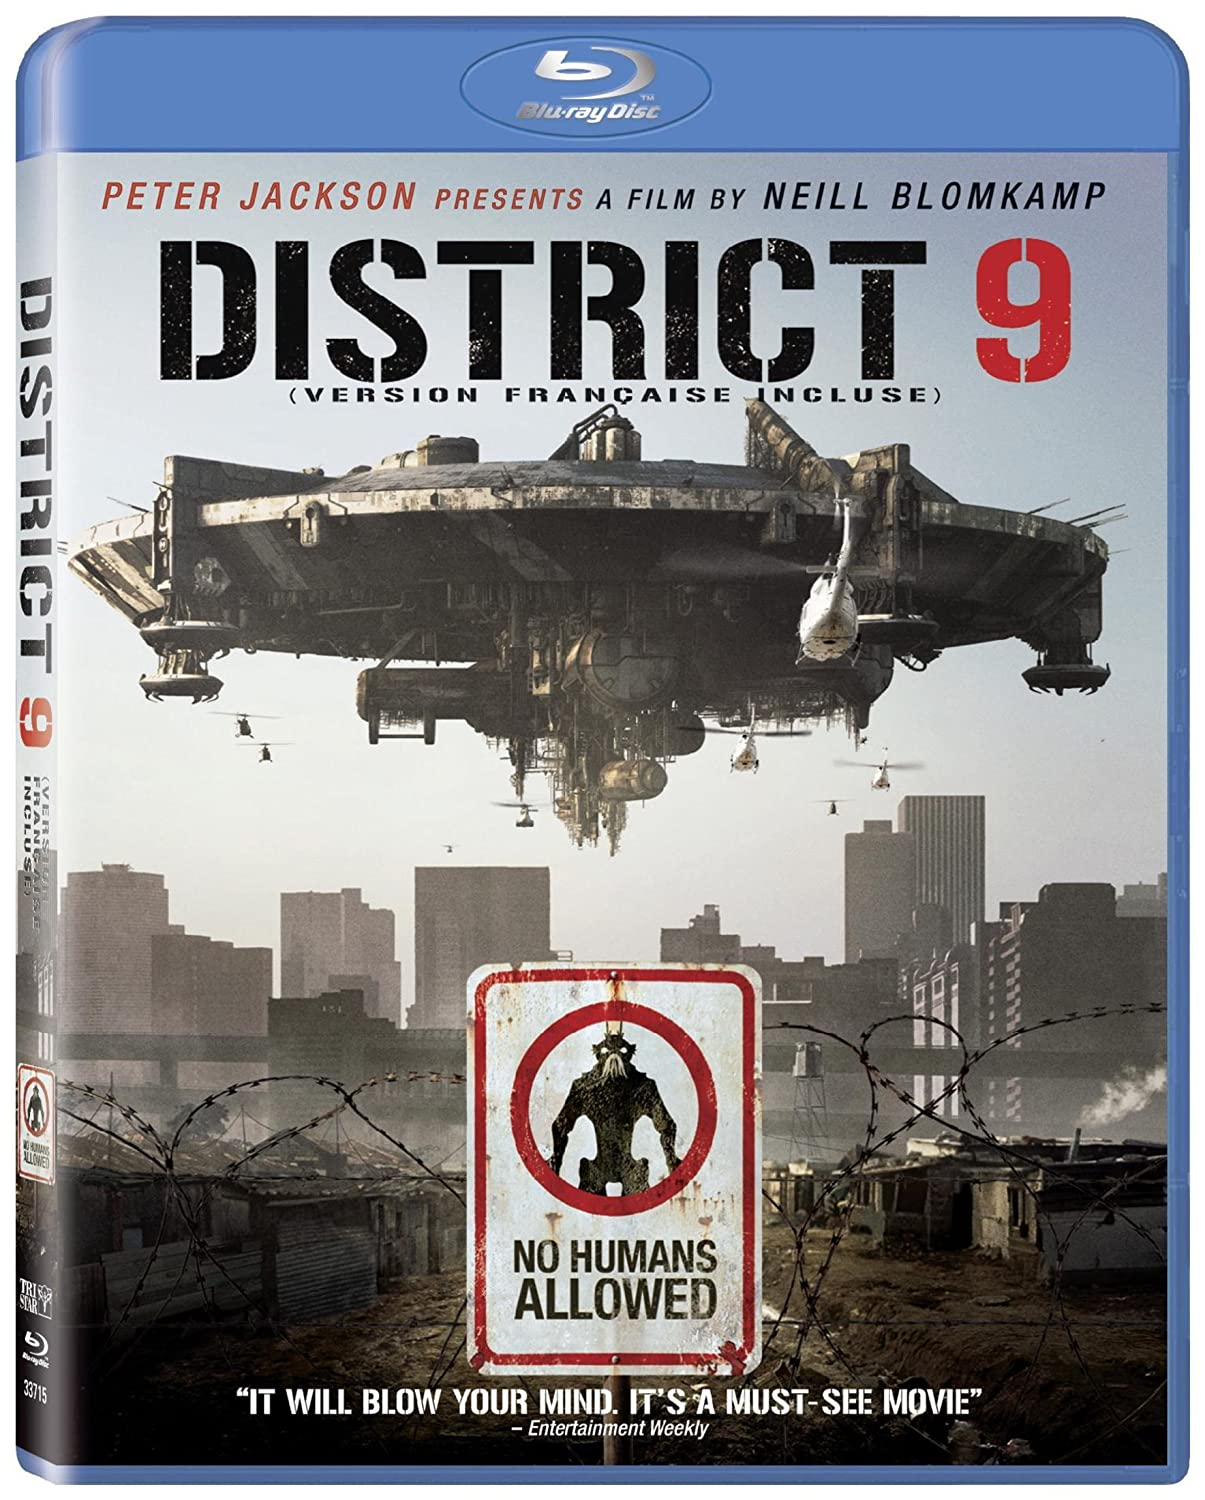 District 9 (Bilingual) [Blu-ray] Sharlto Copley David James Jason Cope Nathalie Boltt